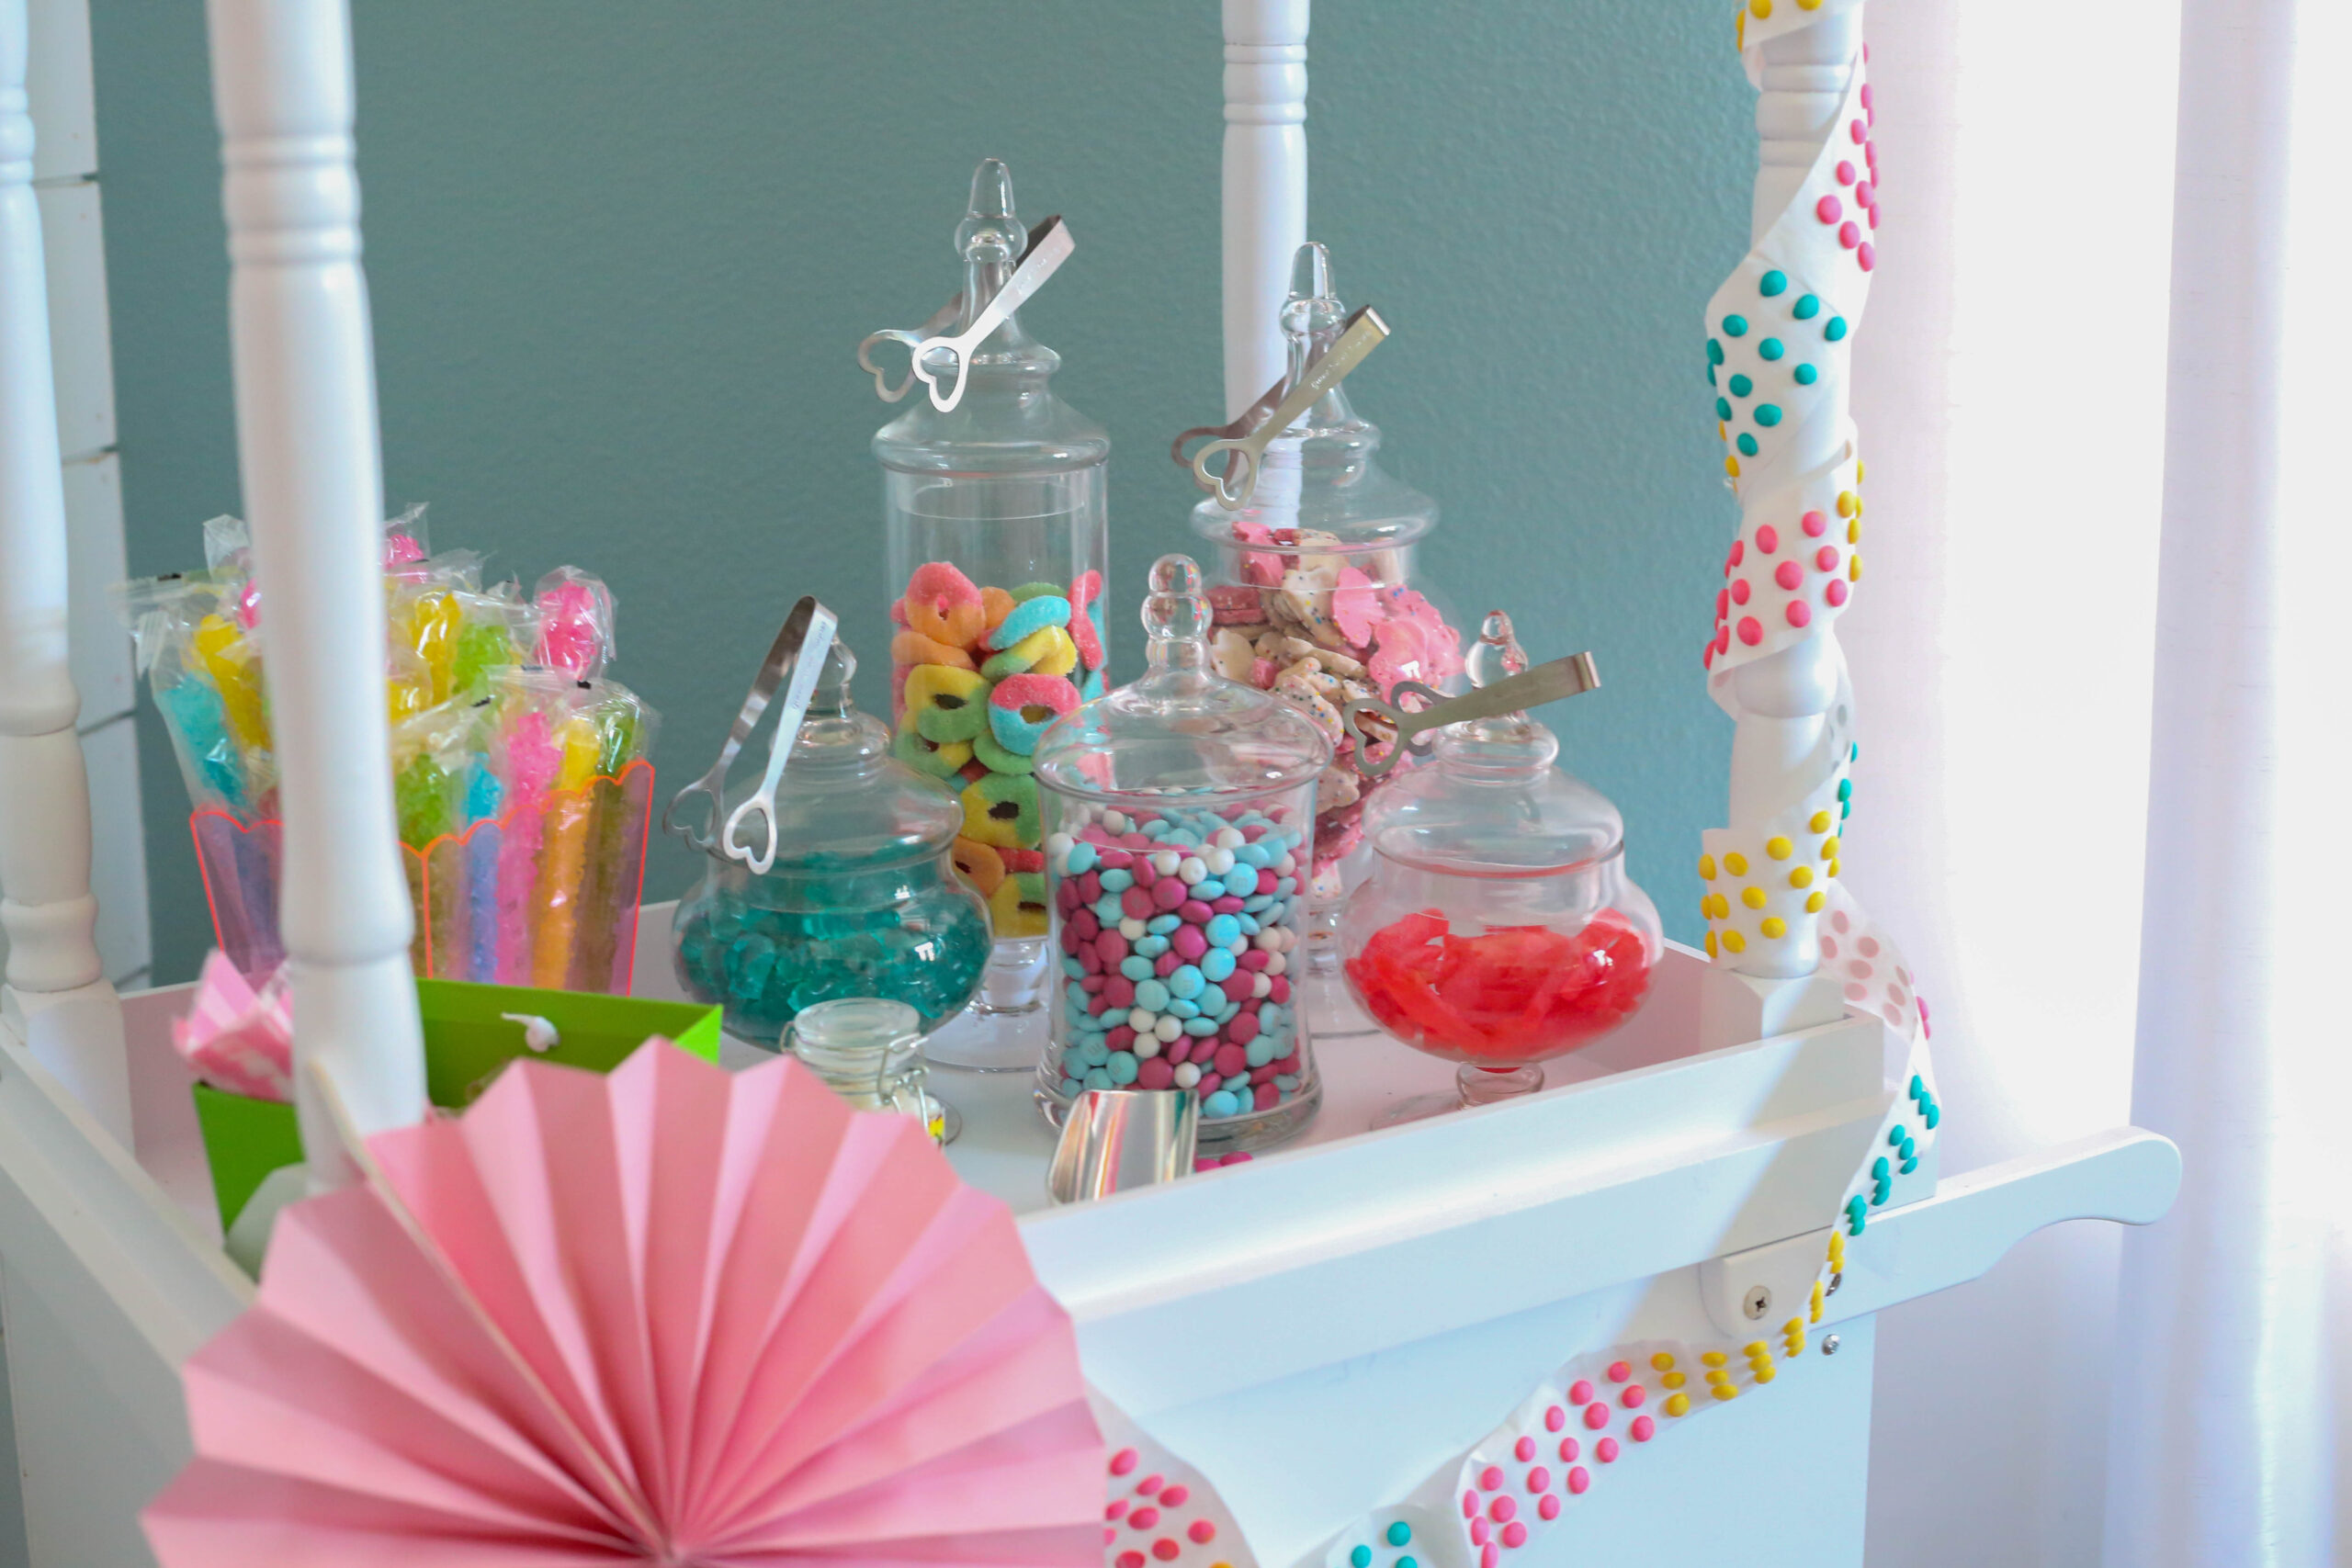 candy cart with candy jars filled with colorful candy